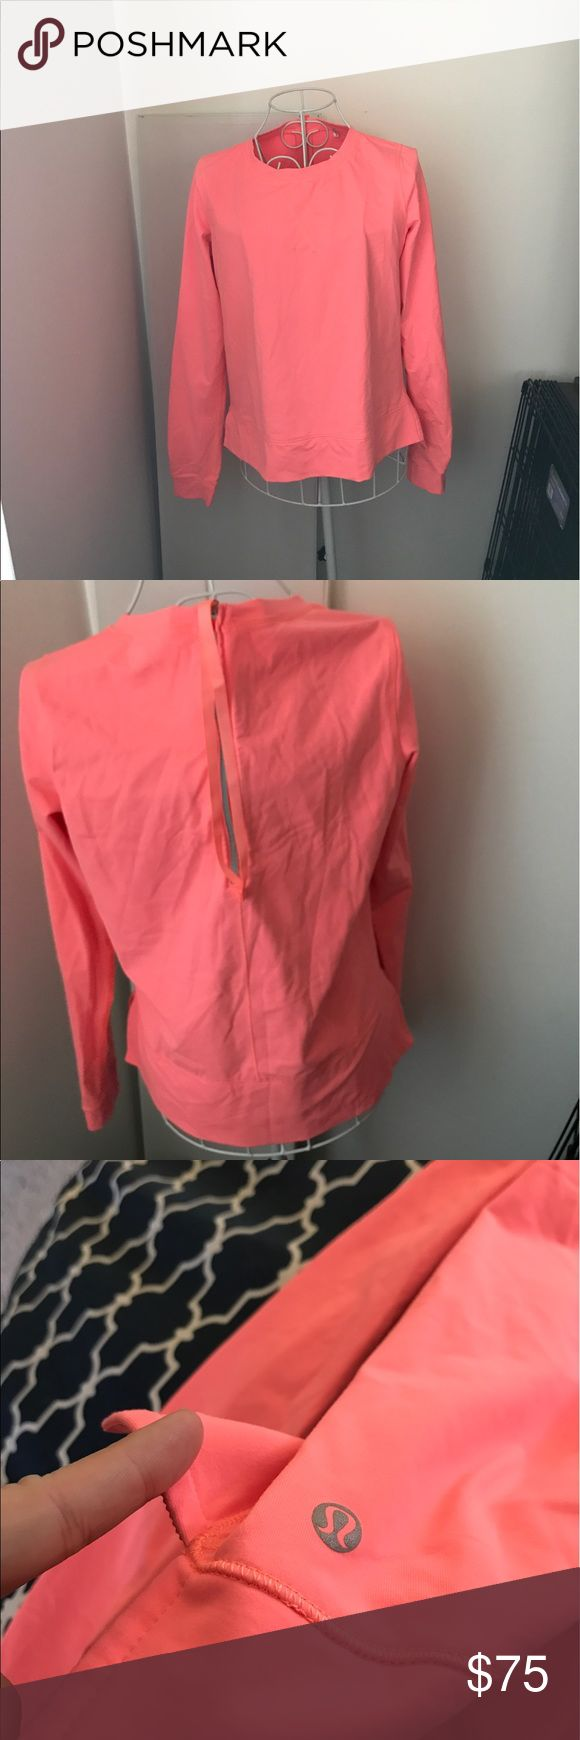 Lululemon back zip pullover Like new worm maybe twice. condition as shown and reflected in price. This item is in good condition but it has been worn please ask any questions before purchasing. This item will only be traded for an autographed Authentic Chanel original, a Lamborghini, a penthouse in Paris, or the services of an Audi mechanic. All orders will be recorded before shipping. I do not model. Please see my reasonable offer chart before submitting an offer. lululemon athletica Tops